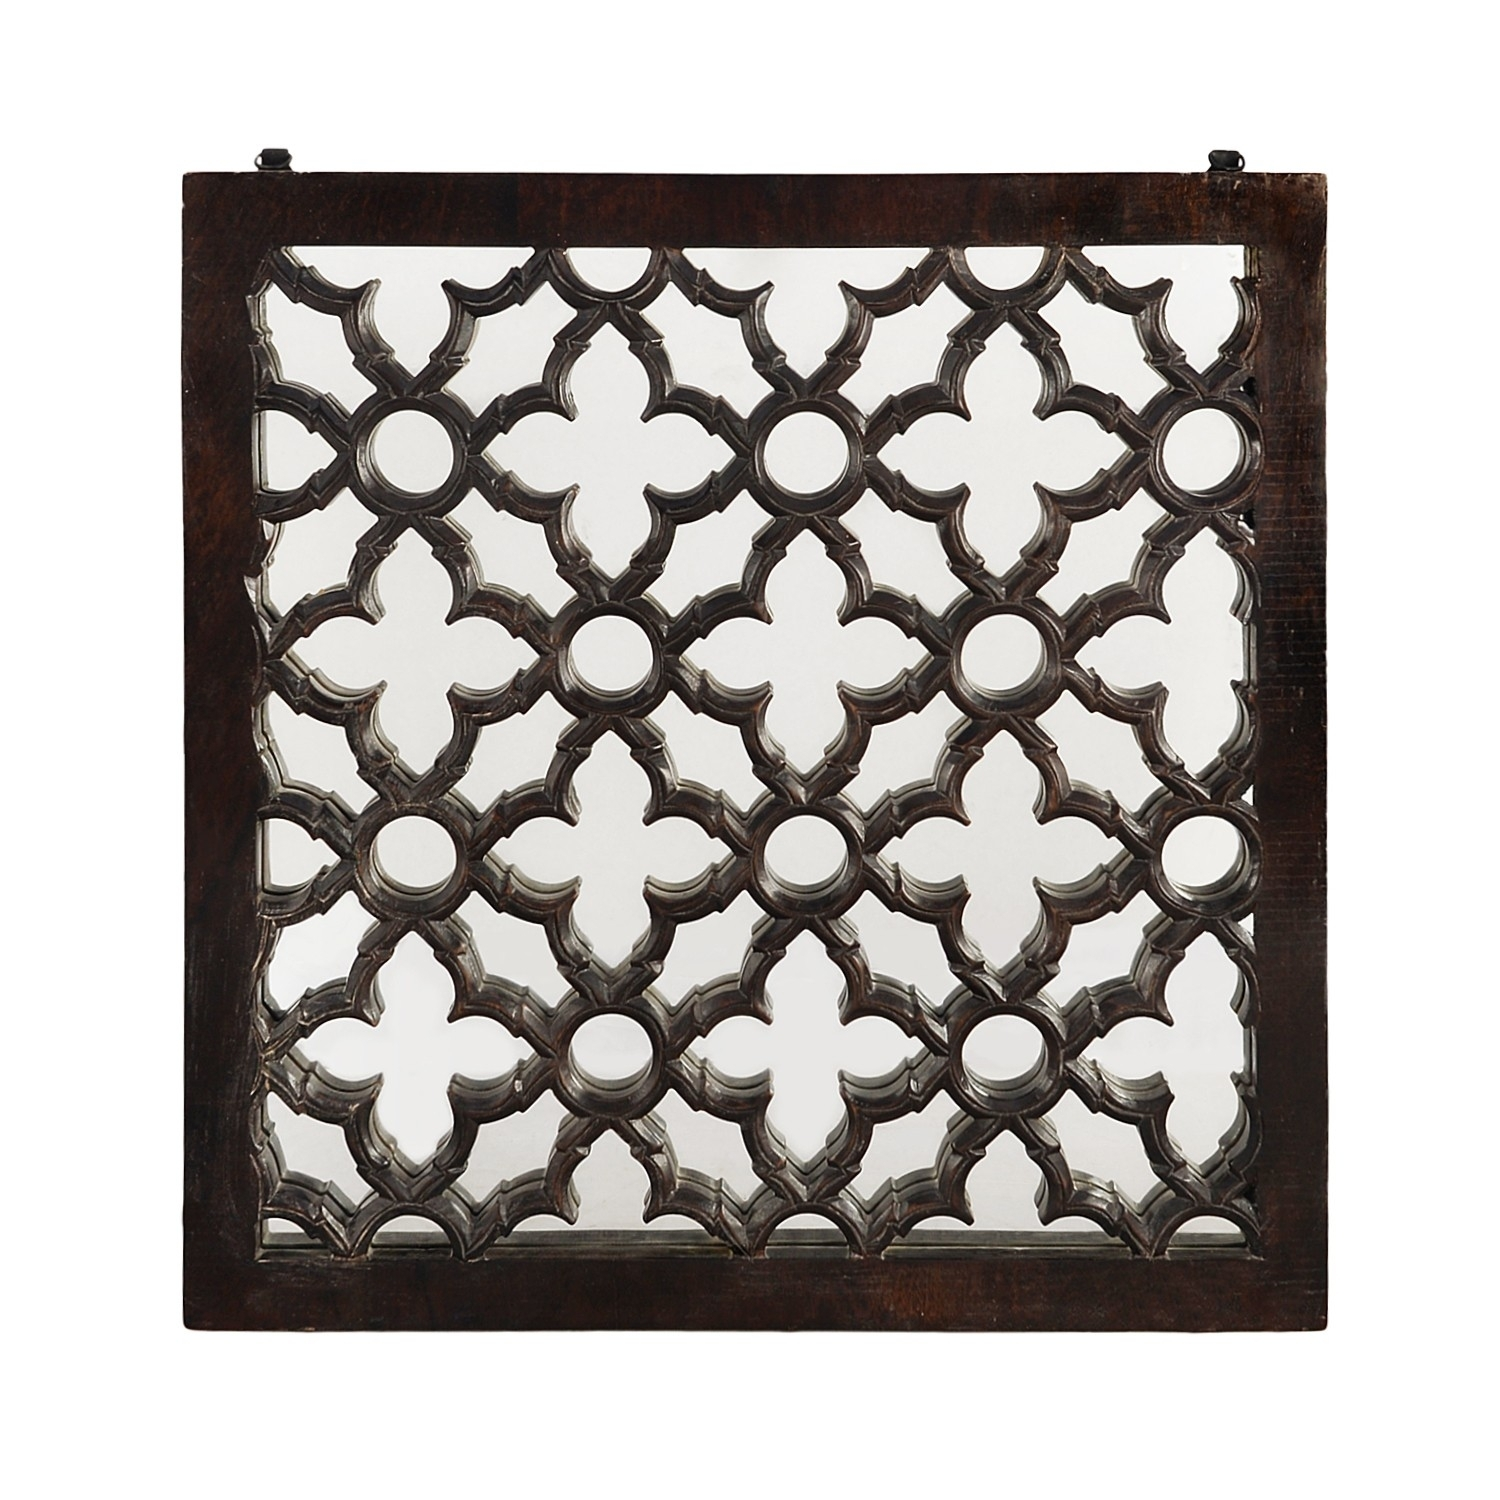 Moroccan Wall Art | The Yellow Door Store with regard to Moroccan Wall Art (Image 13 of 20)